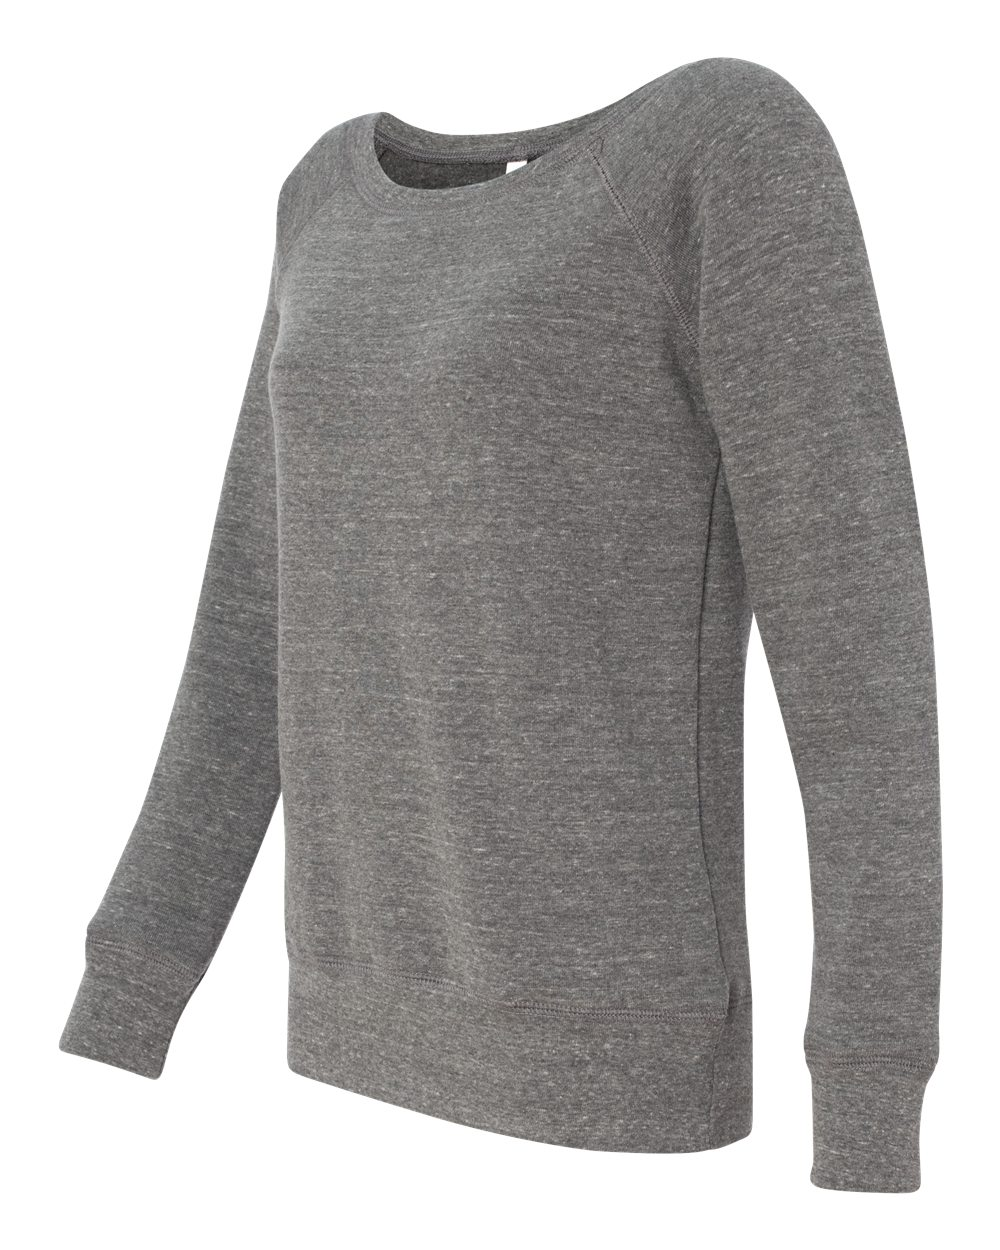 Bella Canvas Womens Sponge Fleece Wide Neck Sweatshirt - GREY TRIBLEND,M 7501